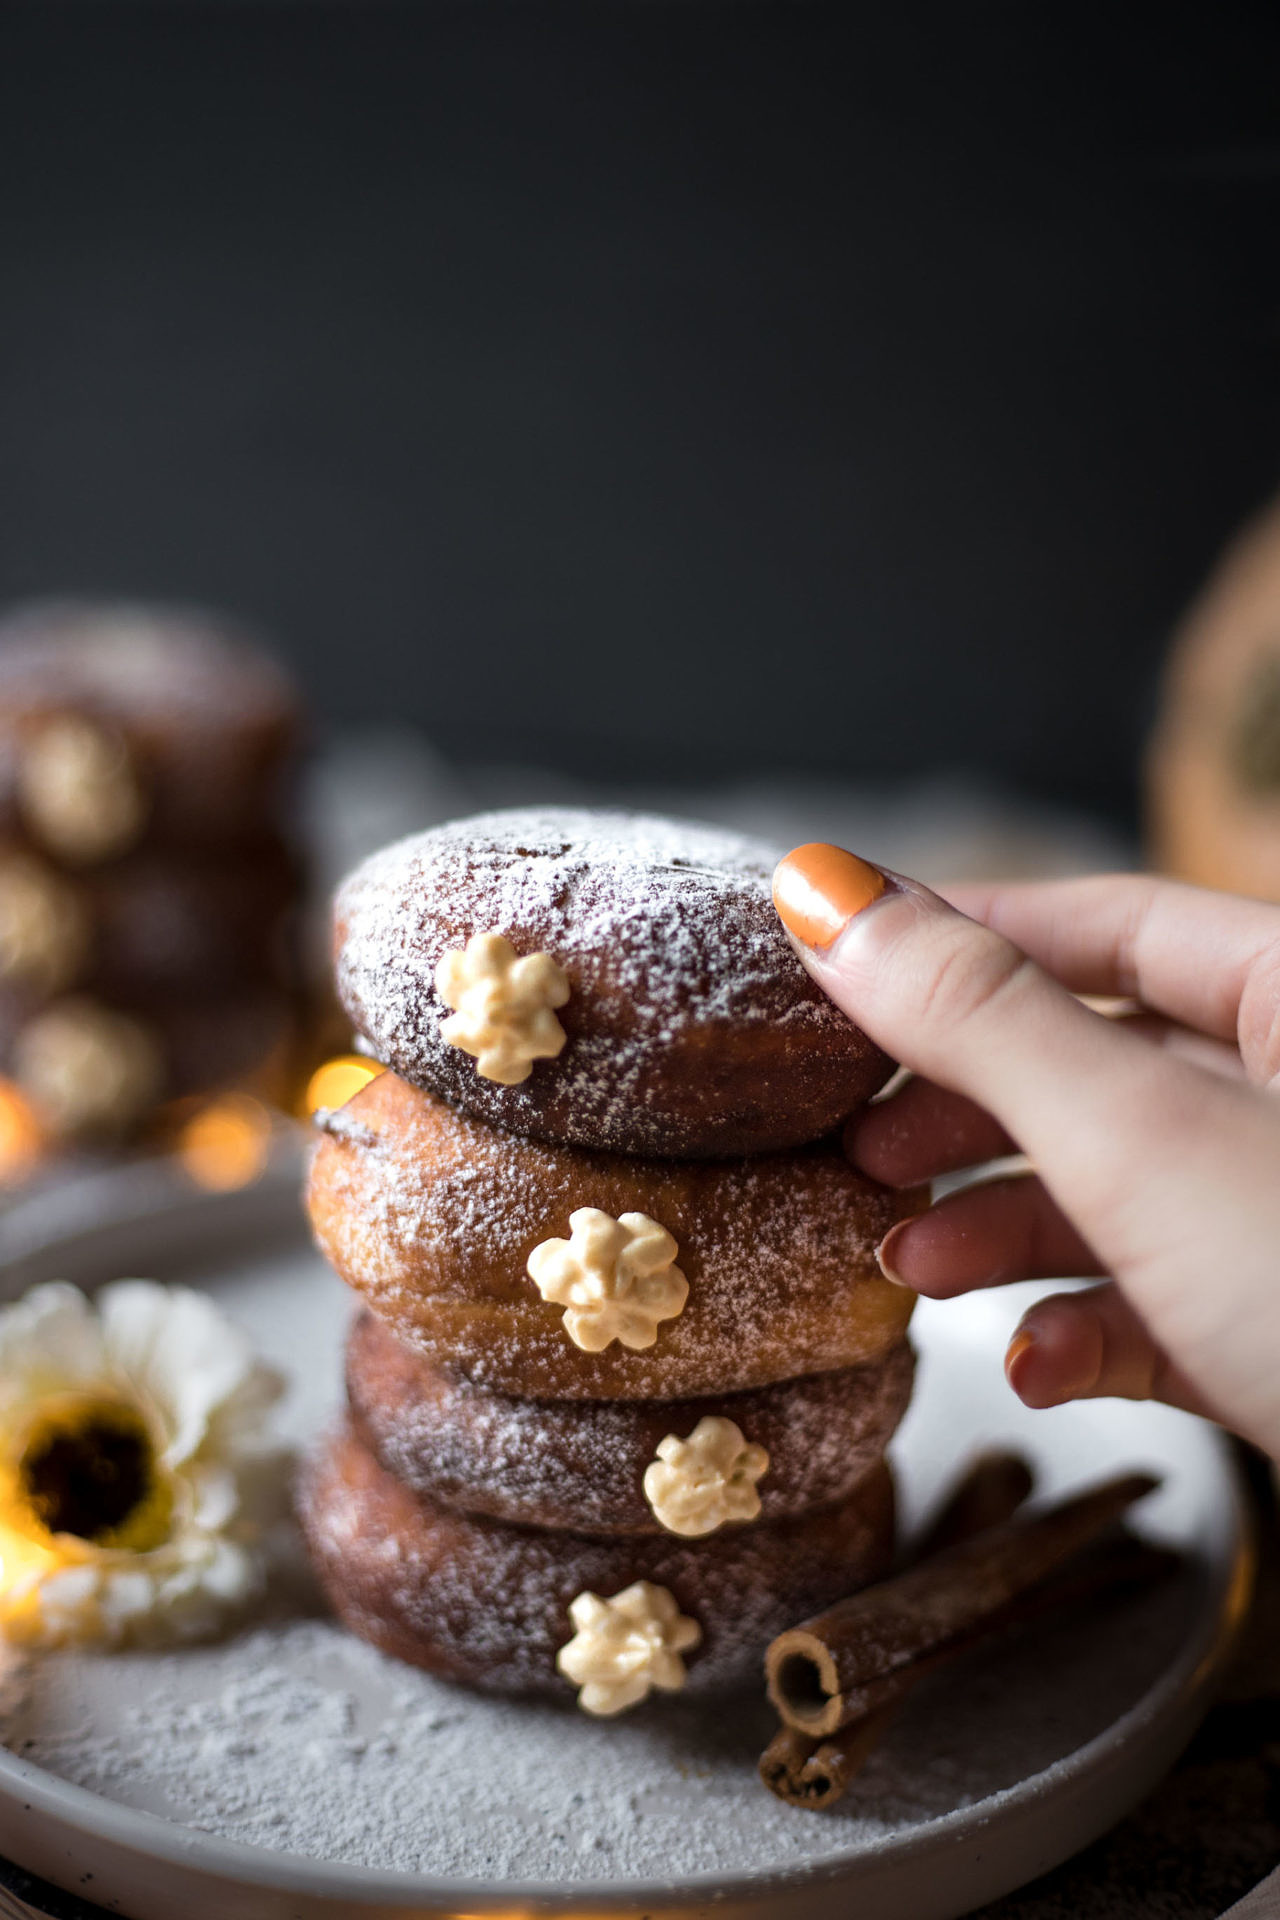 These Gluten-Free Yeast-Raised Doughnuts with Pumpkin Filling are super light, airy and soft. The pumpkin filling is super creamy and perfectly spiced.